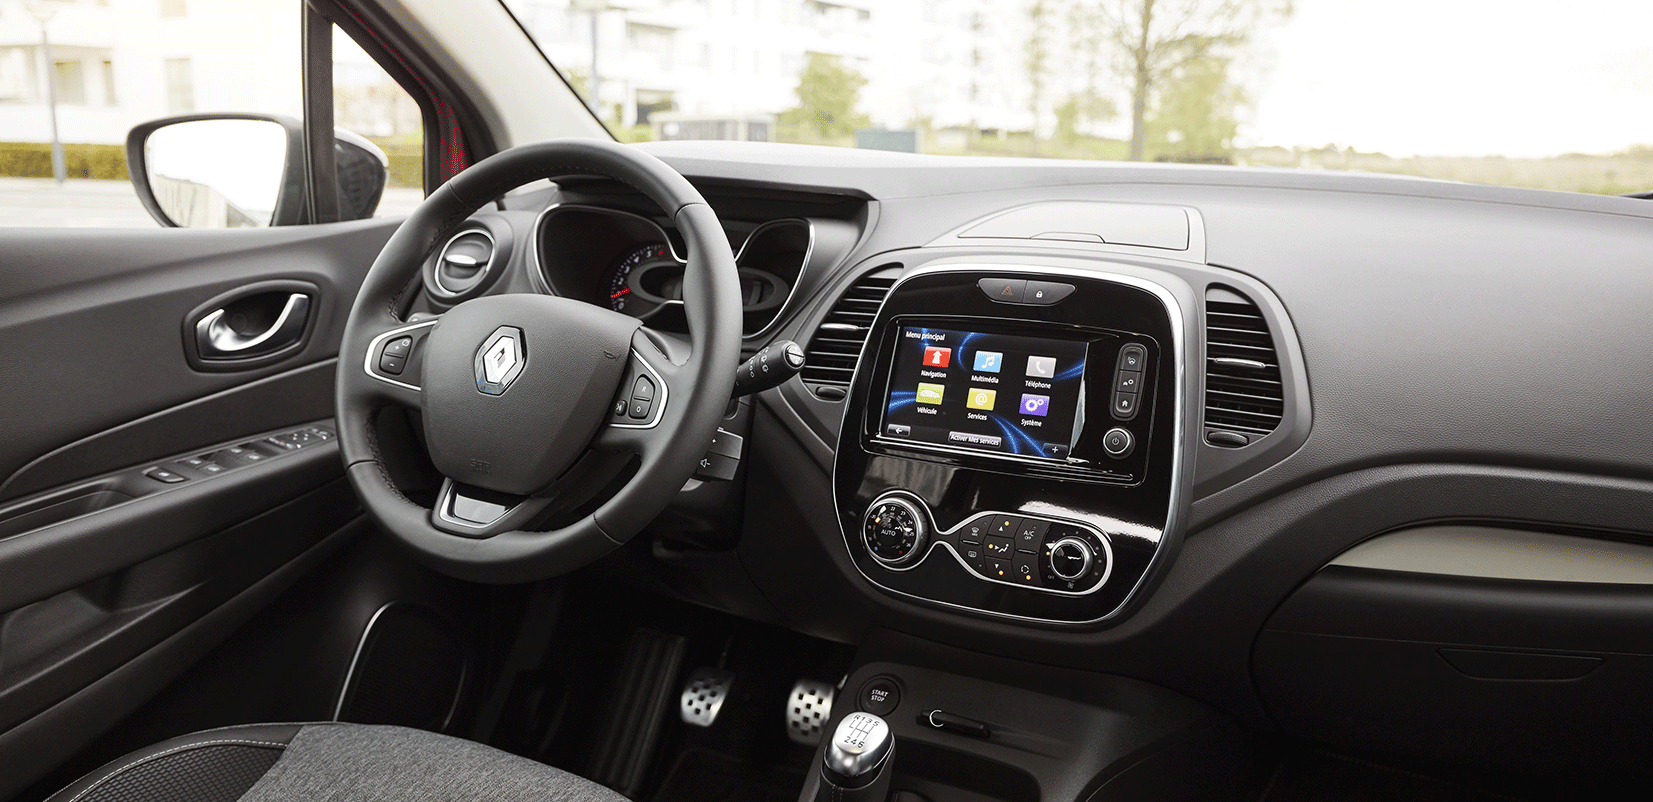 CONNECTED VEHICLE - Groupe Renault